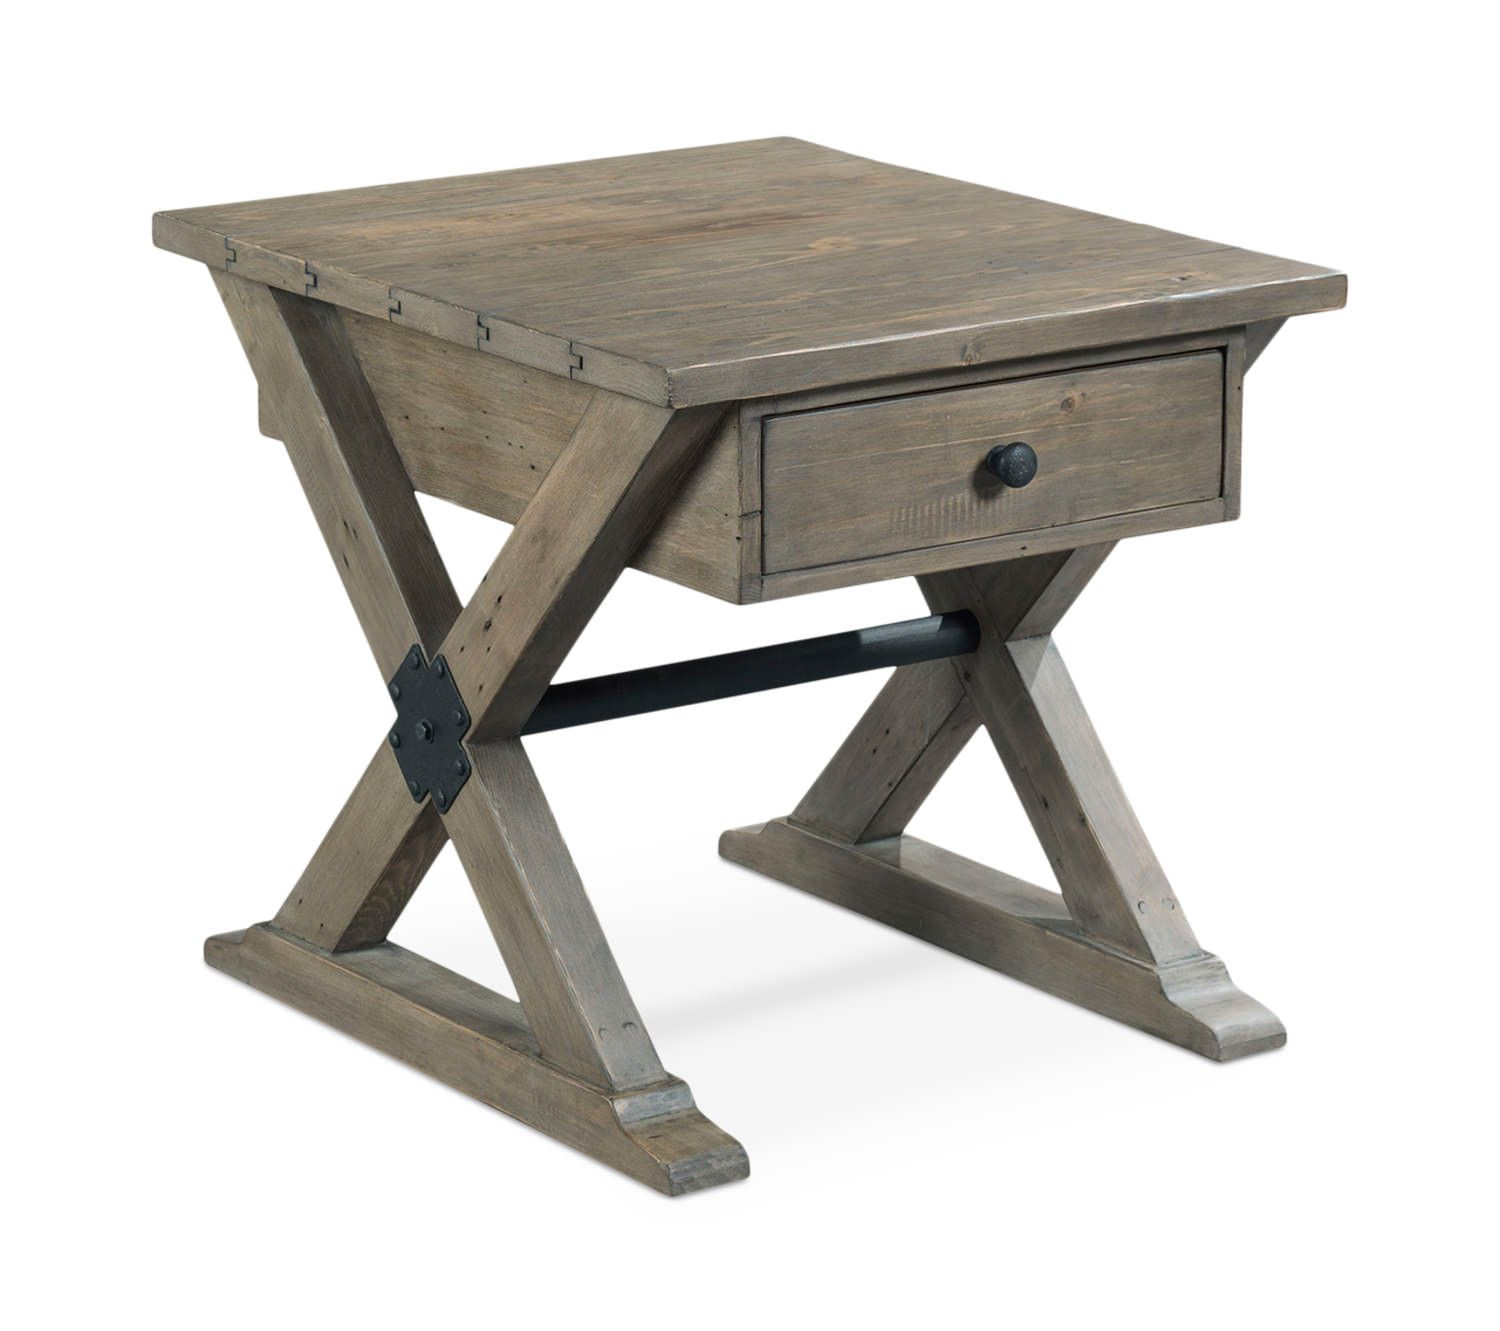 Reclamation Place End Table End Tables Furniture End Tables